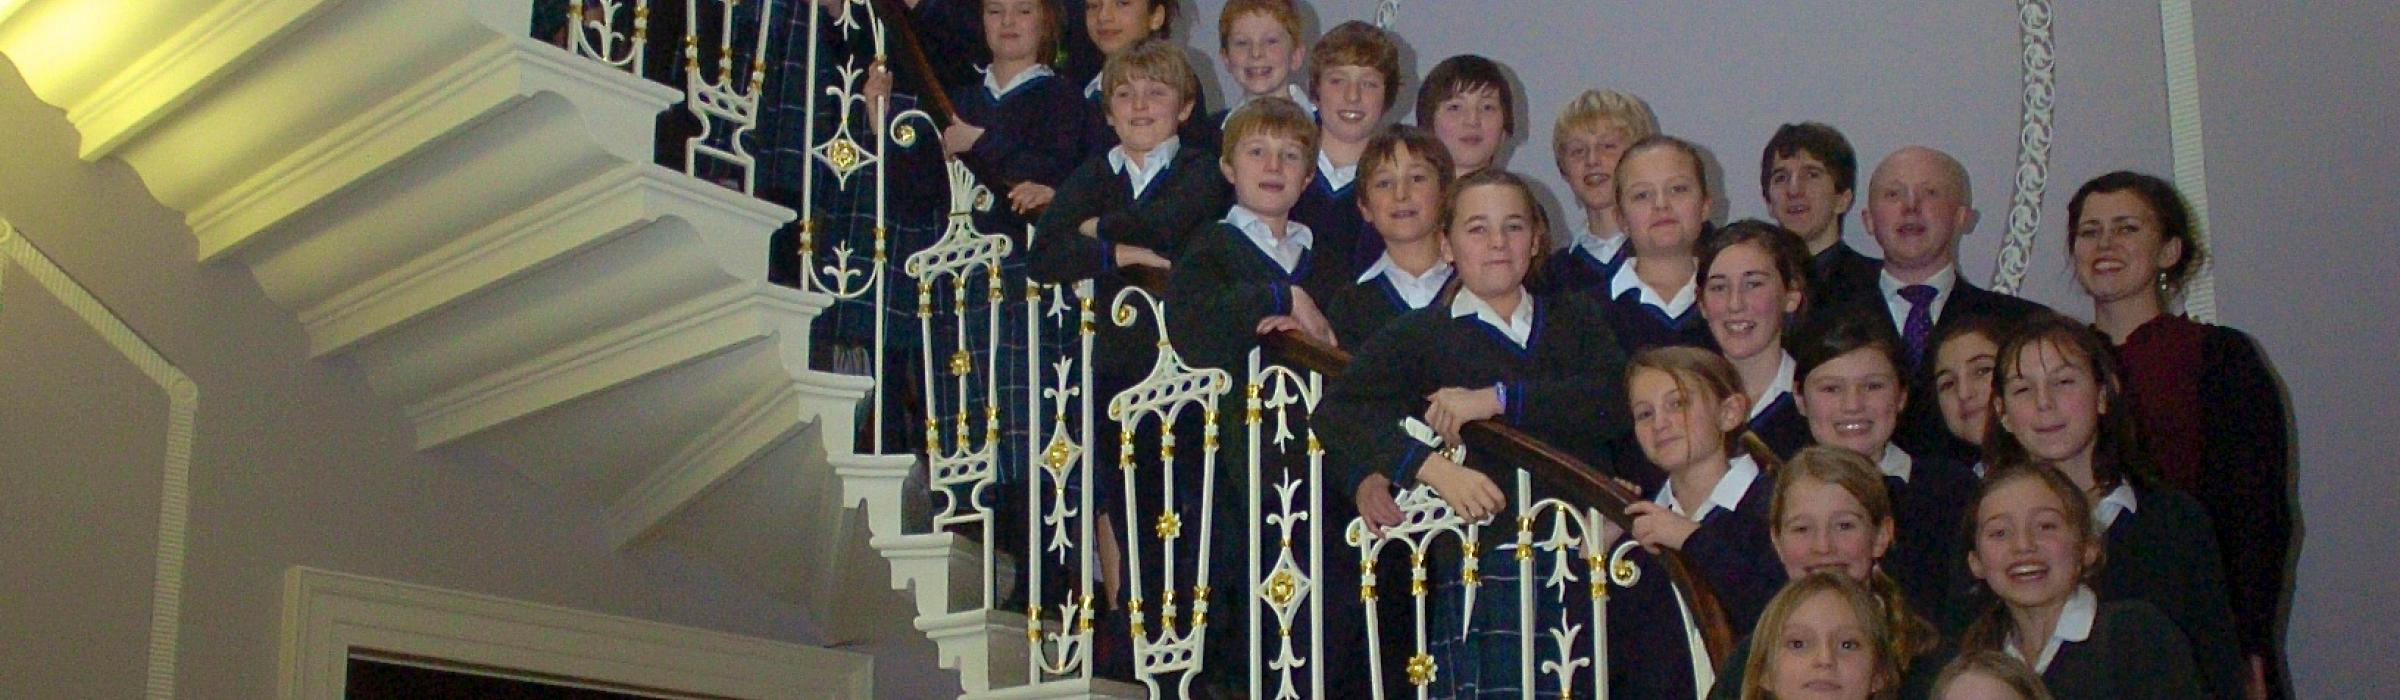 Heath Mount School Choir